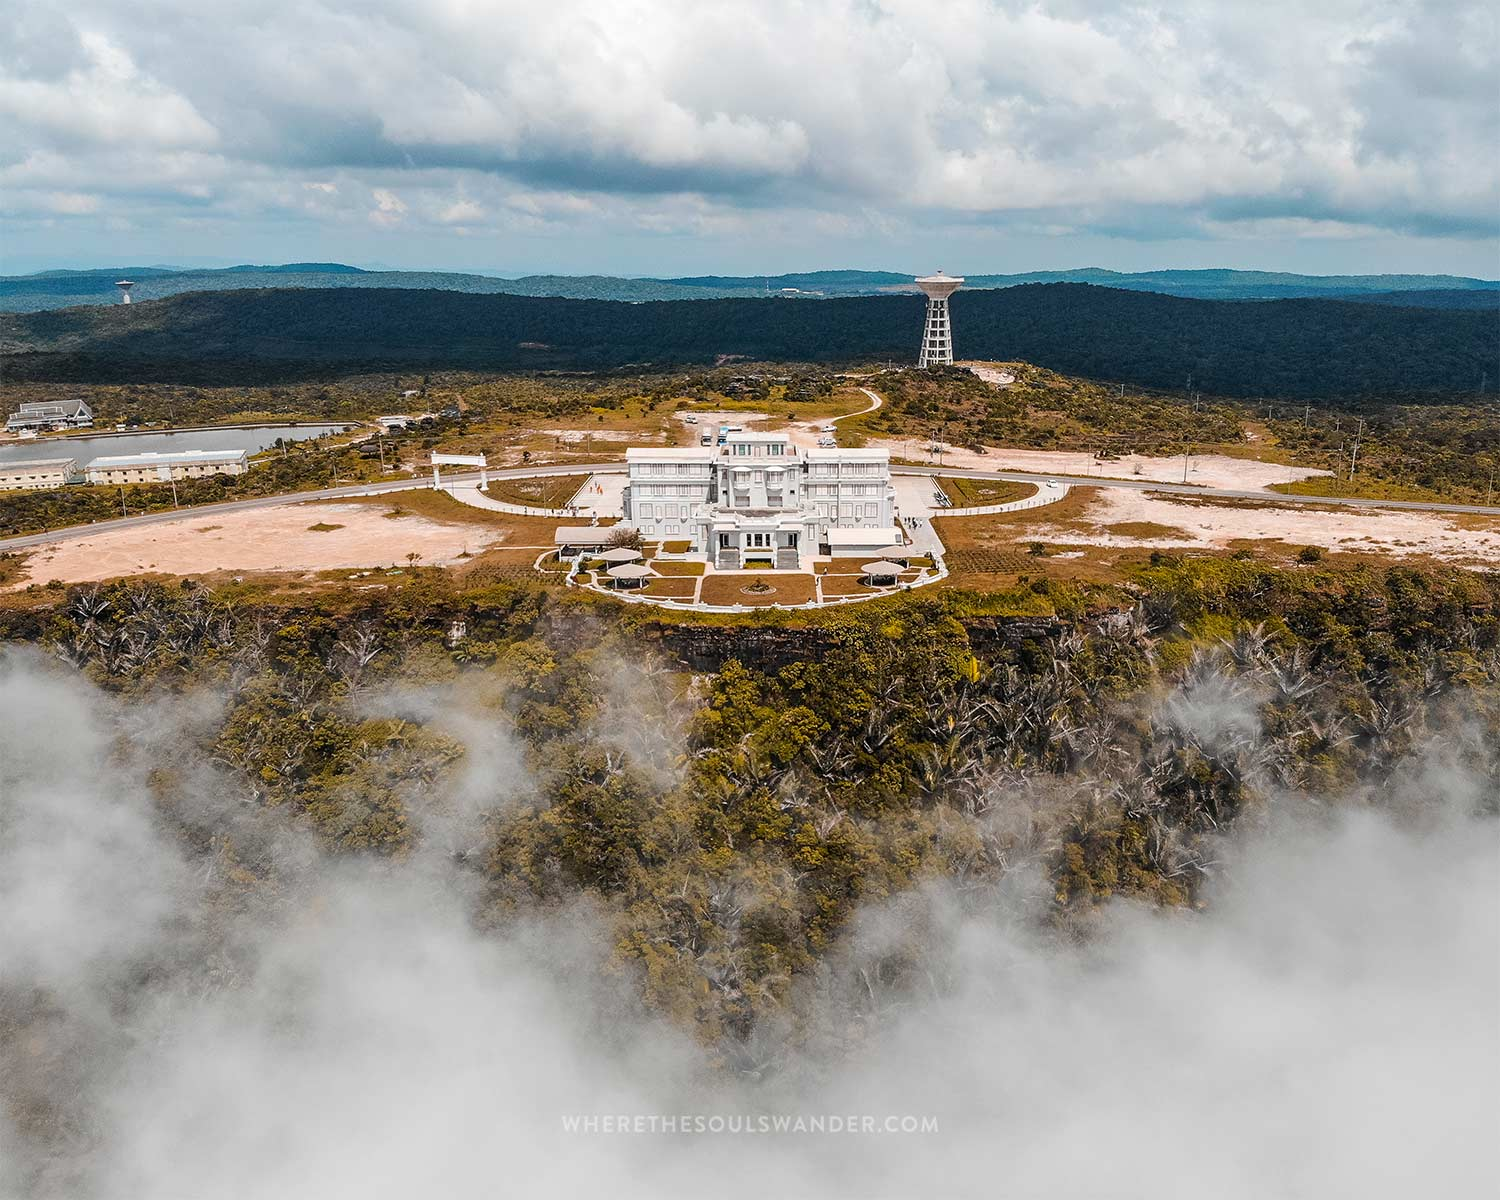 The old hotel on top of Bokor Hill at 1080 metre height